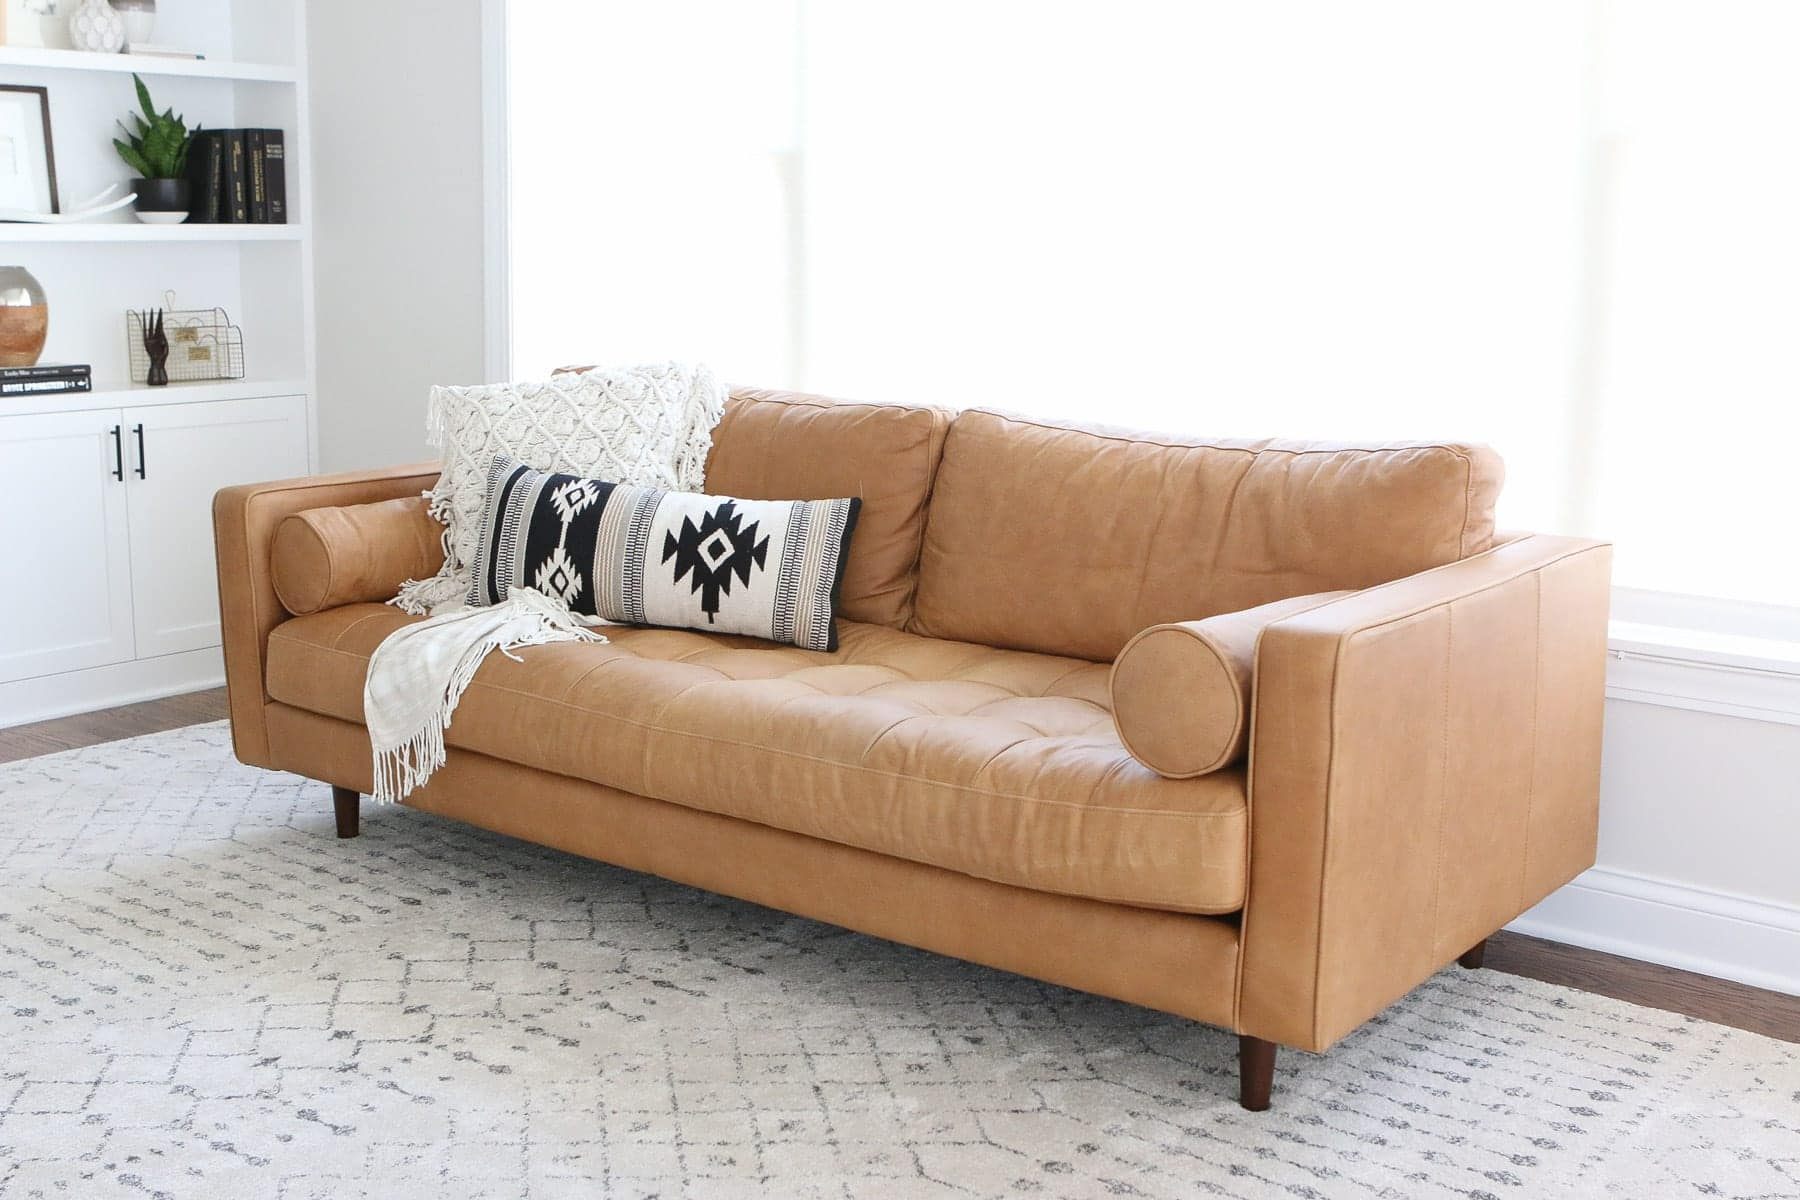 buying a brown leather couch from article